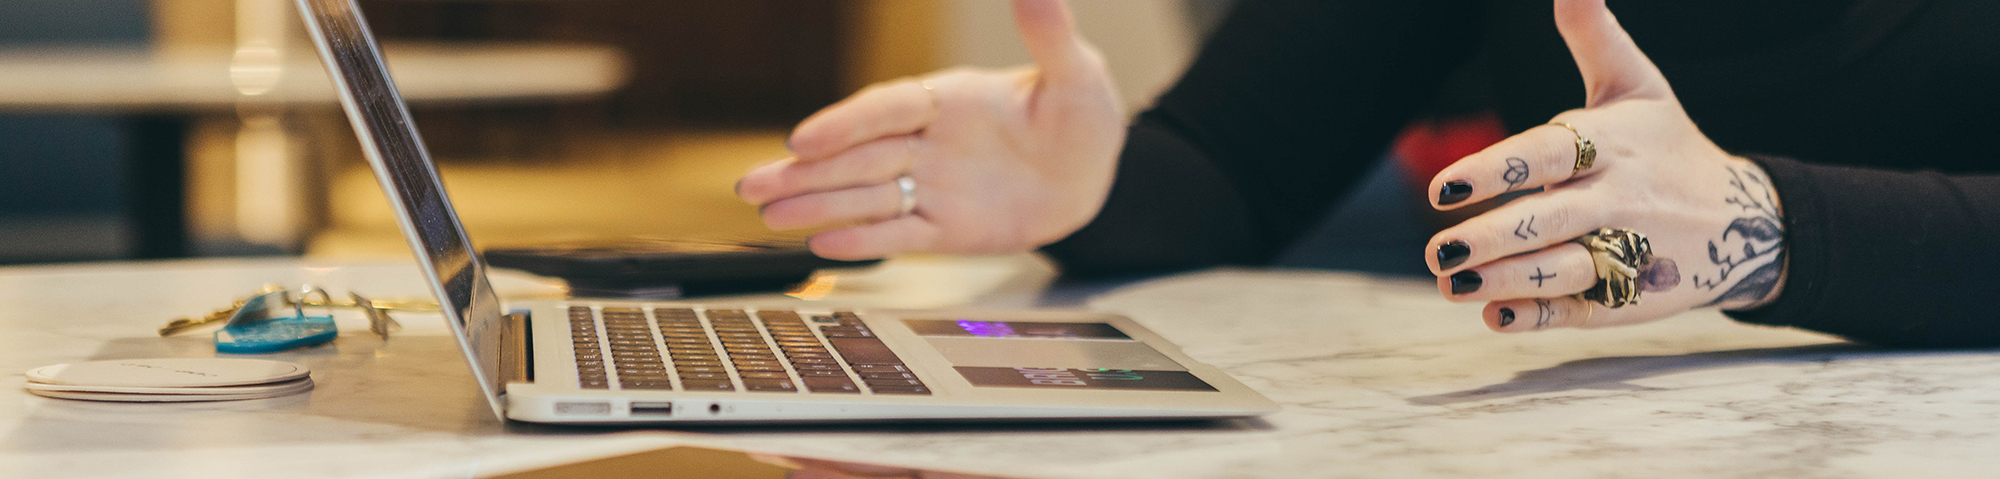 3 Questions To Ask Before Hiring A Freelance Designer